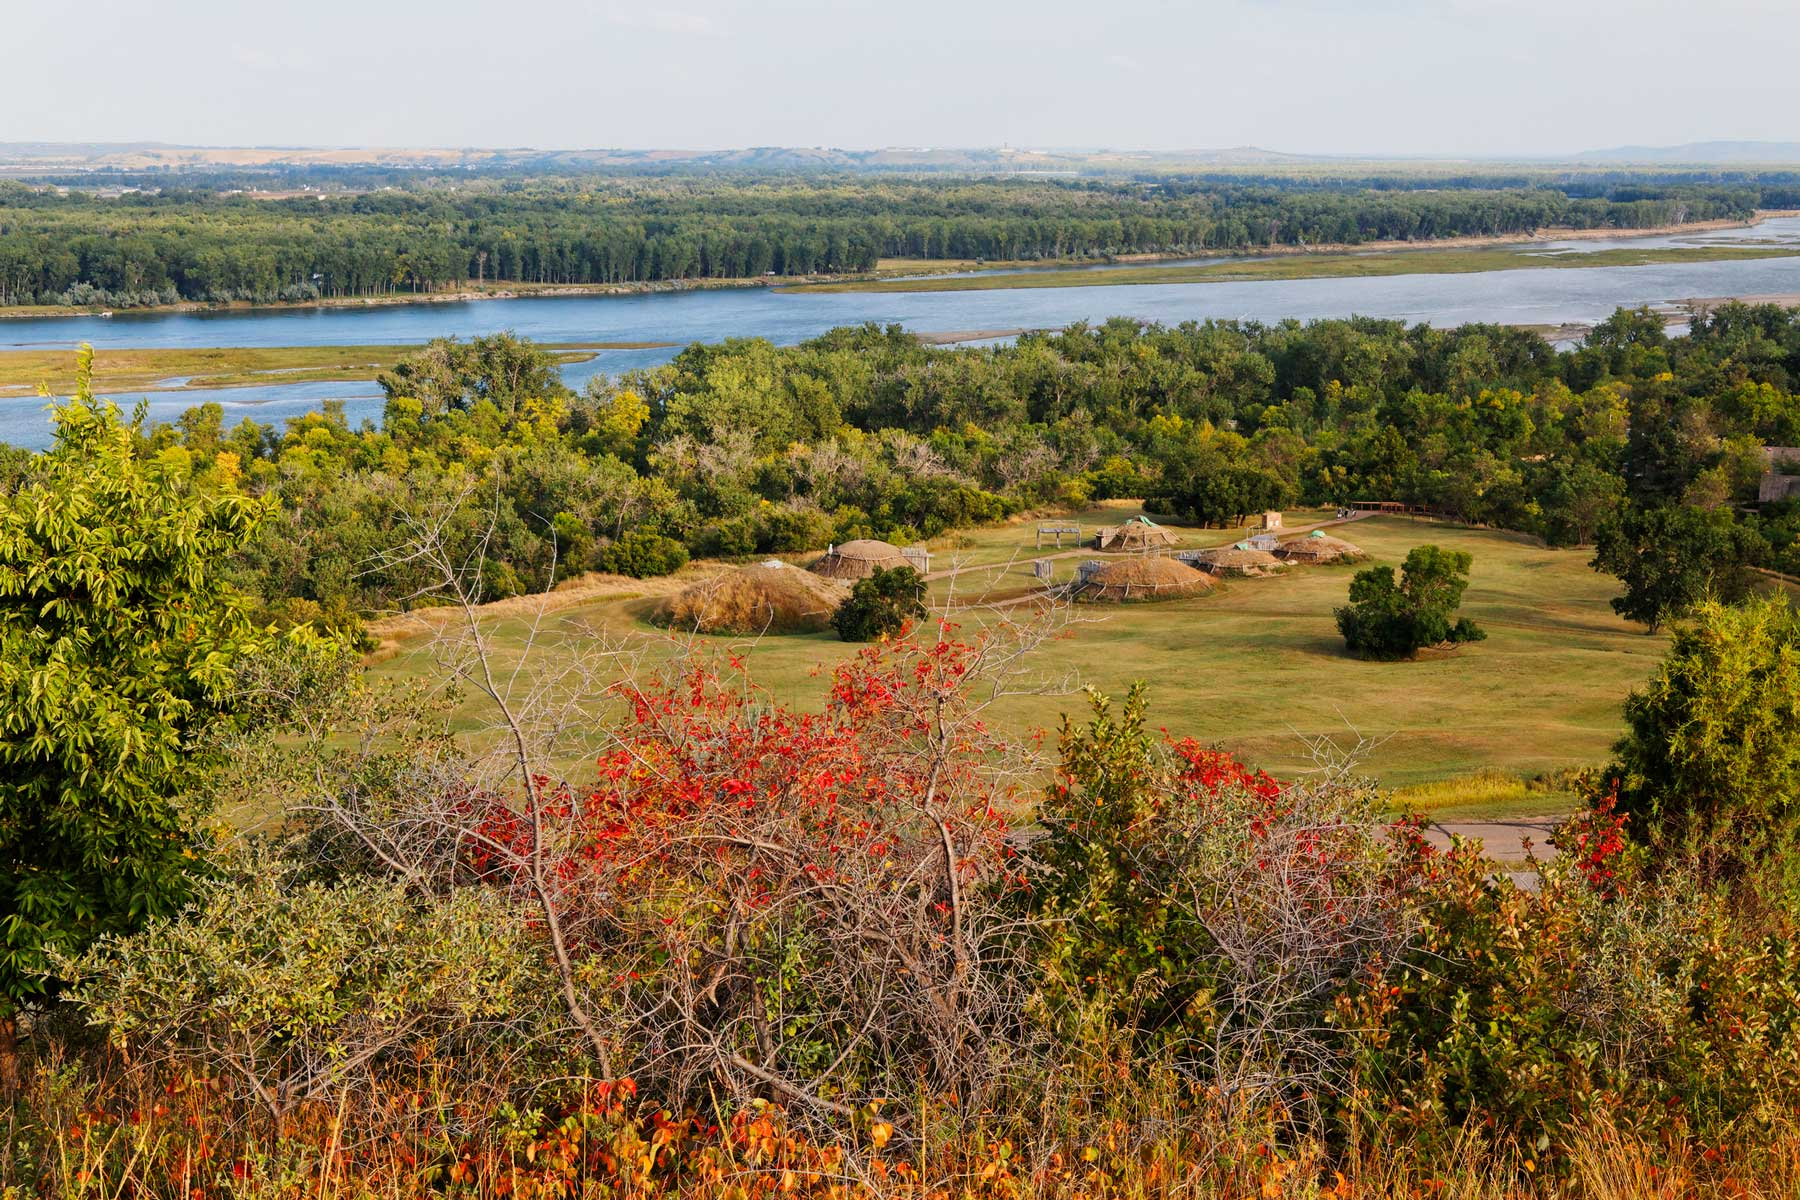 Mandan village in Abraham Lincoln State Park and Missouri River, Bismarck, North Dakota